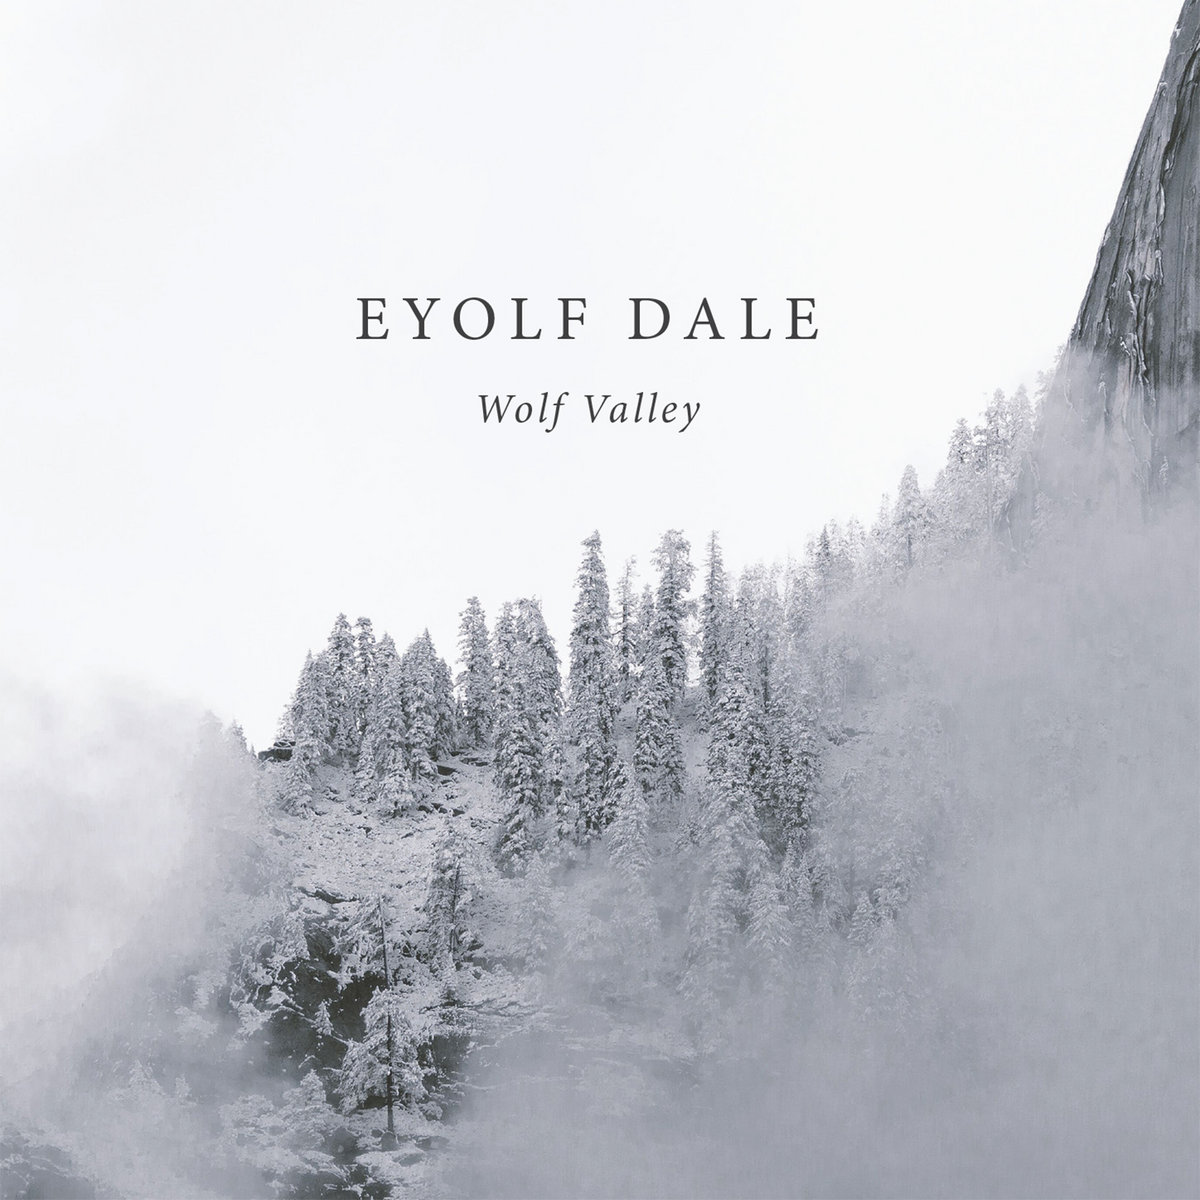 Image result for WOlf Valley eyolf dale